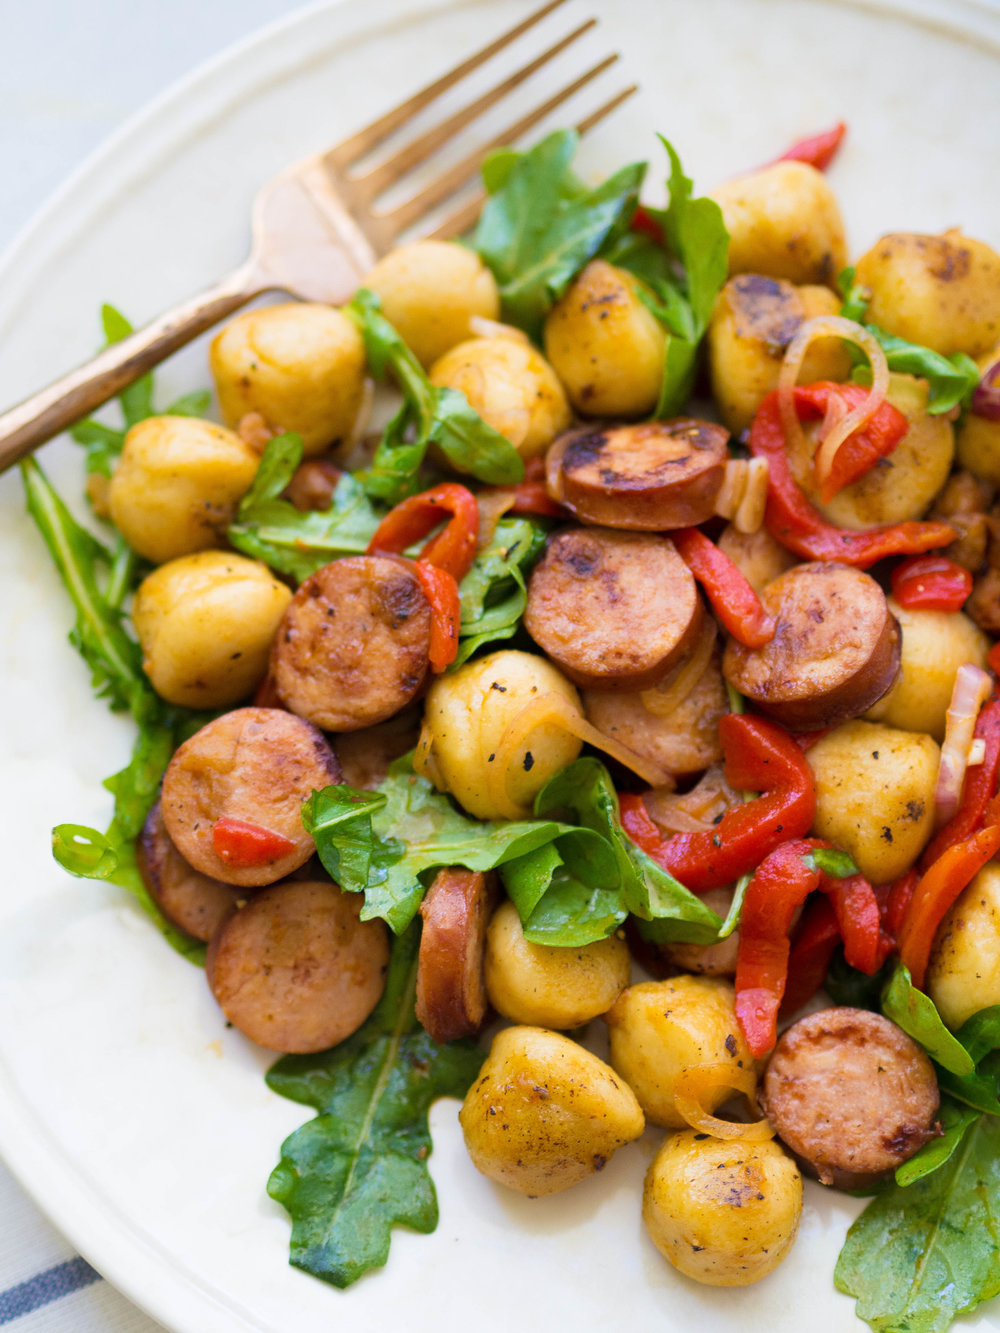 Pan-fried gnocchi and chicken sausage salad is just as good as it sounds! With roasted red peppers, arugula and quick pickled shallots! The best 30 minute meal! #quickrecipe #gnocchi #pasta #easydinner #salad